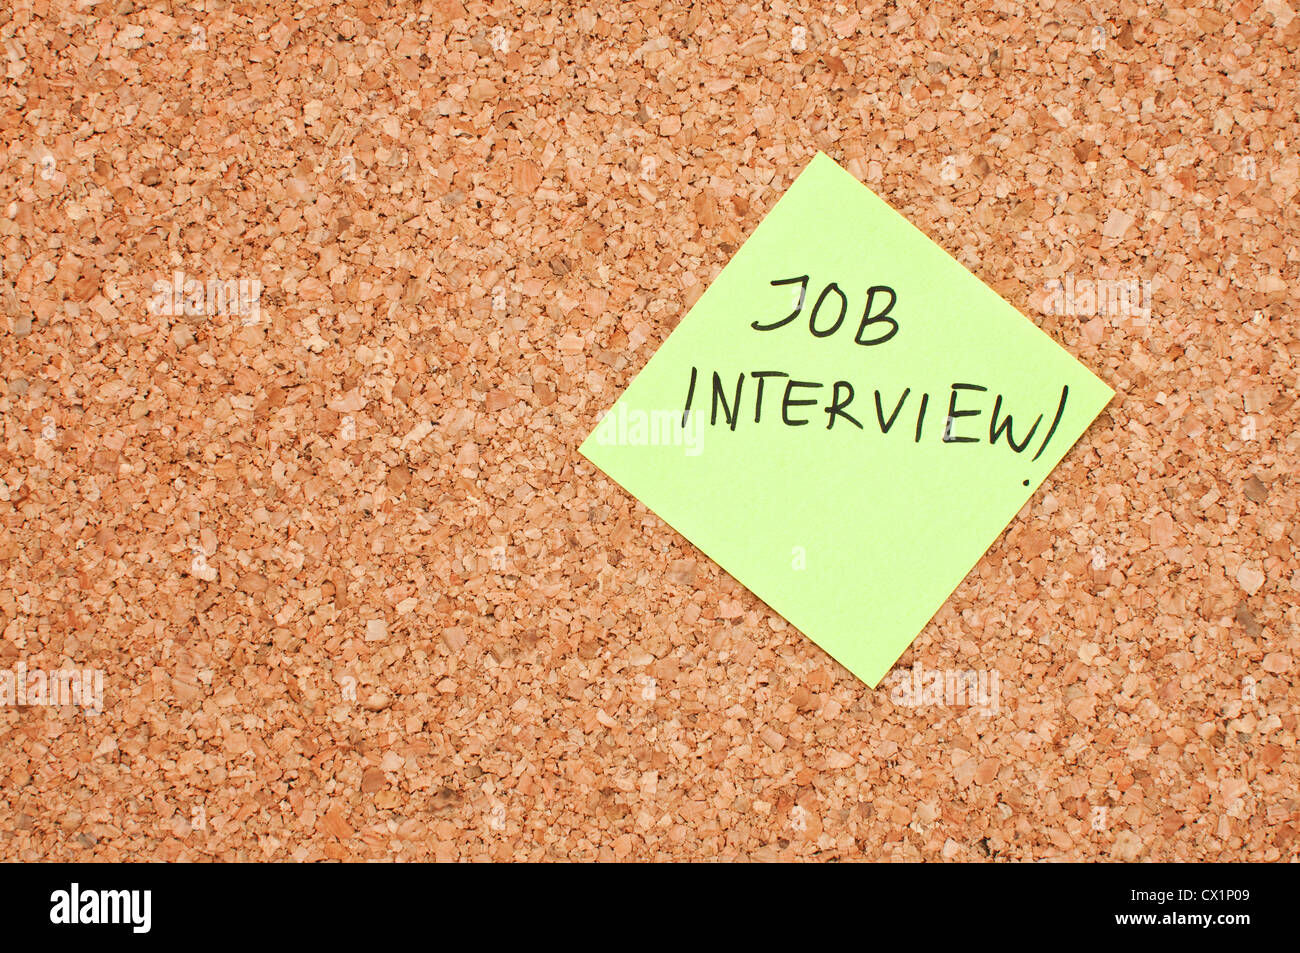 Job interview reminder note on a cork memory board - Stock Image